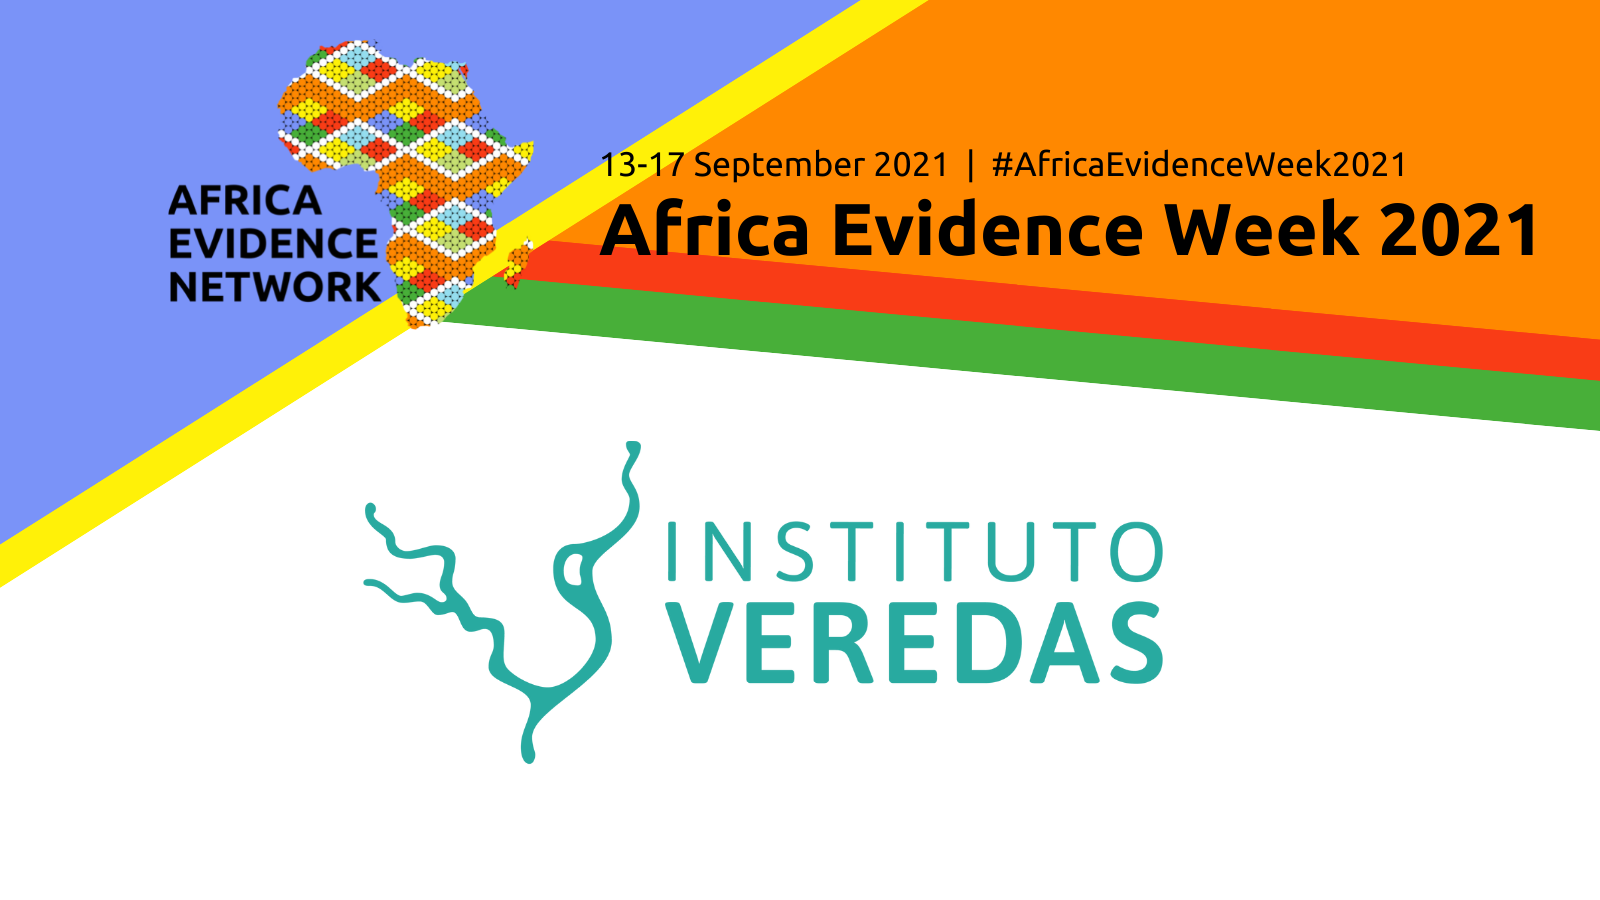 Africa Evidence Week 2021 event: Evidence-informed policy-making - experiences from Latin America